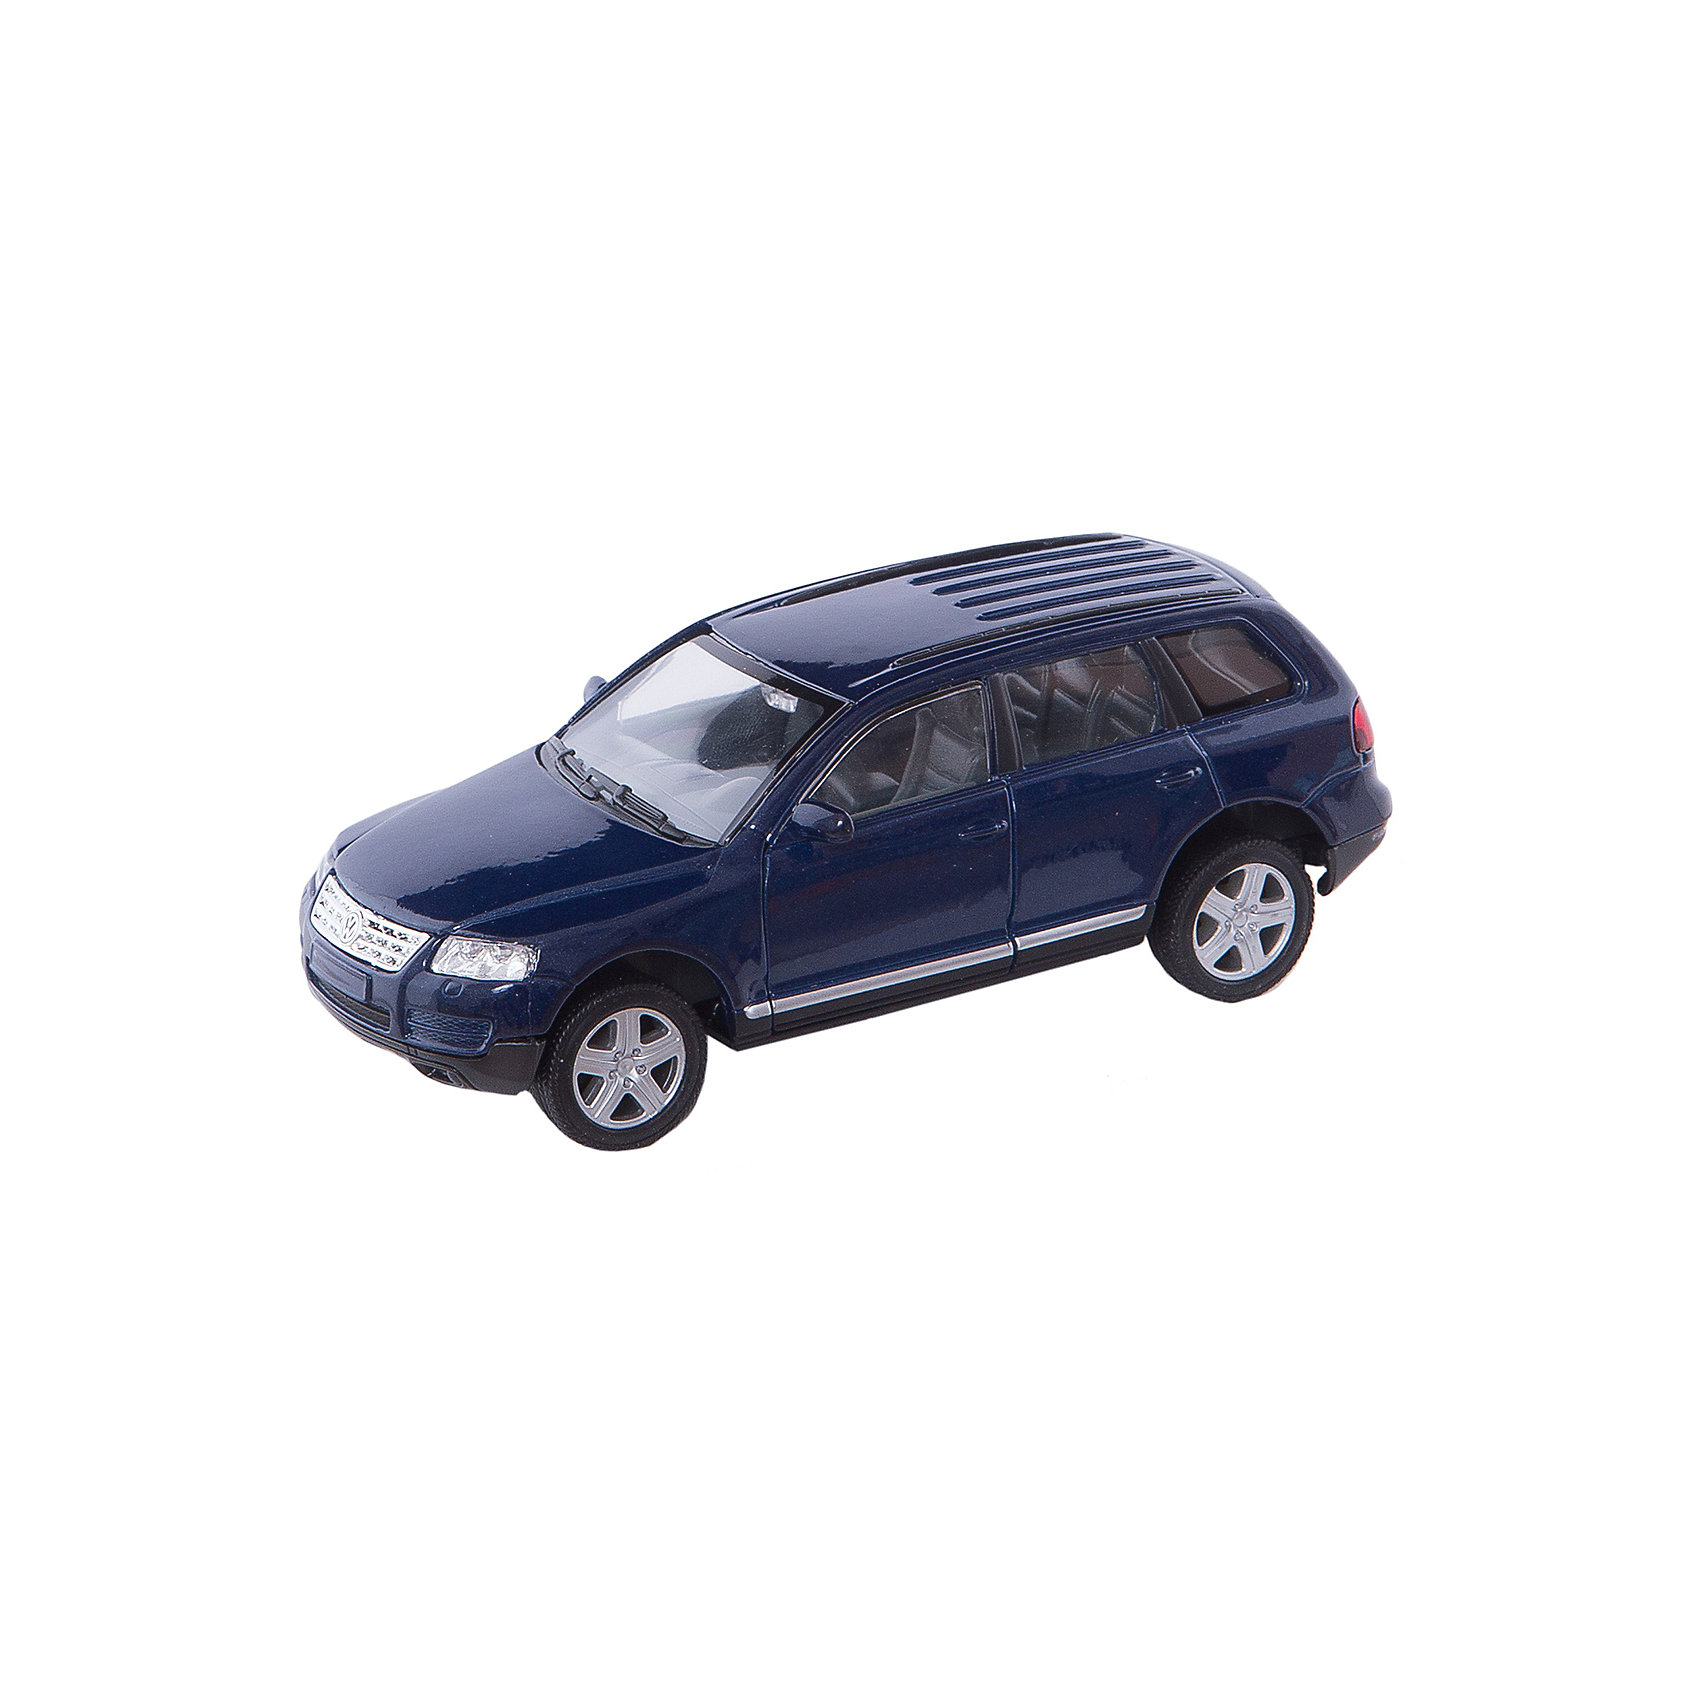 welly vw golf v 1 18 велли welly Welly Модель машины 1:31 VW TOUAREG, Welly